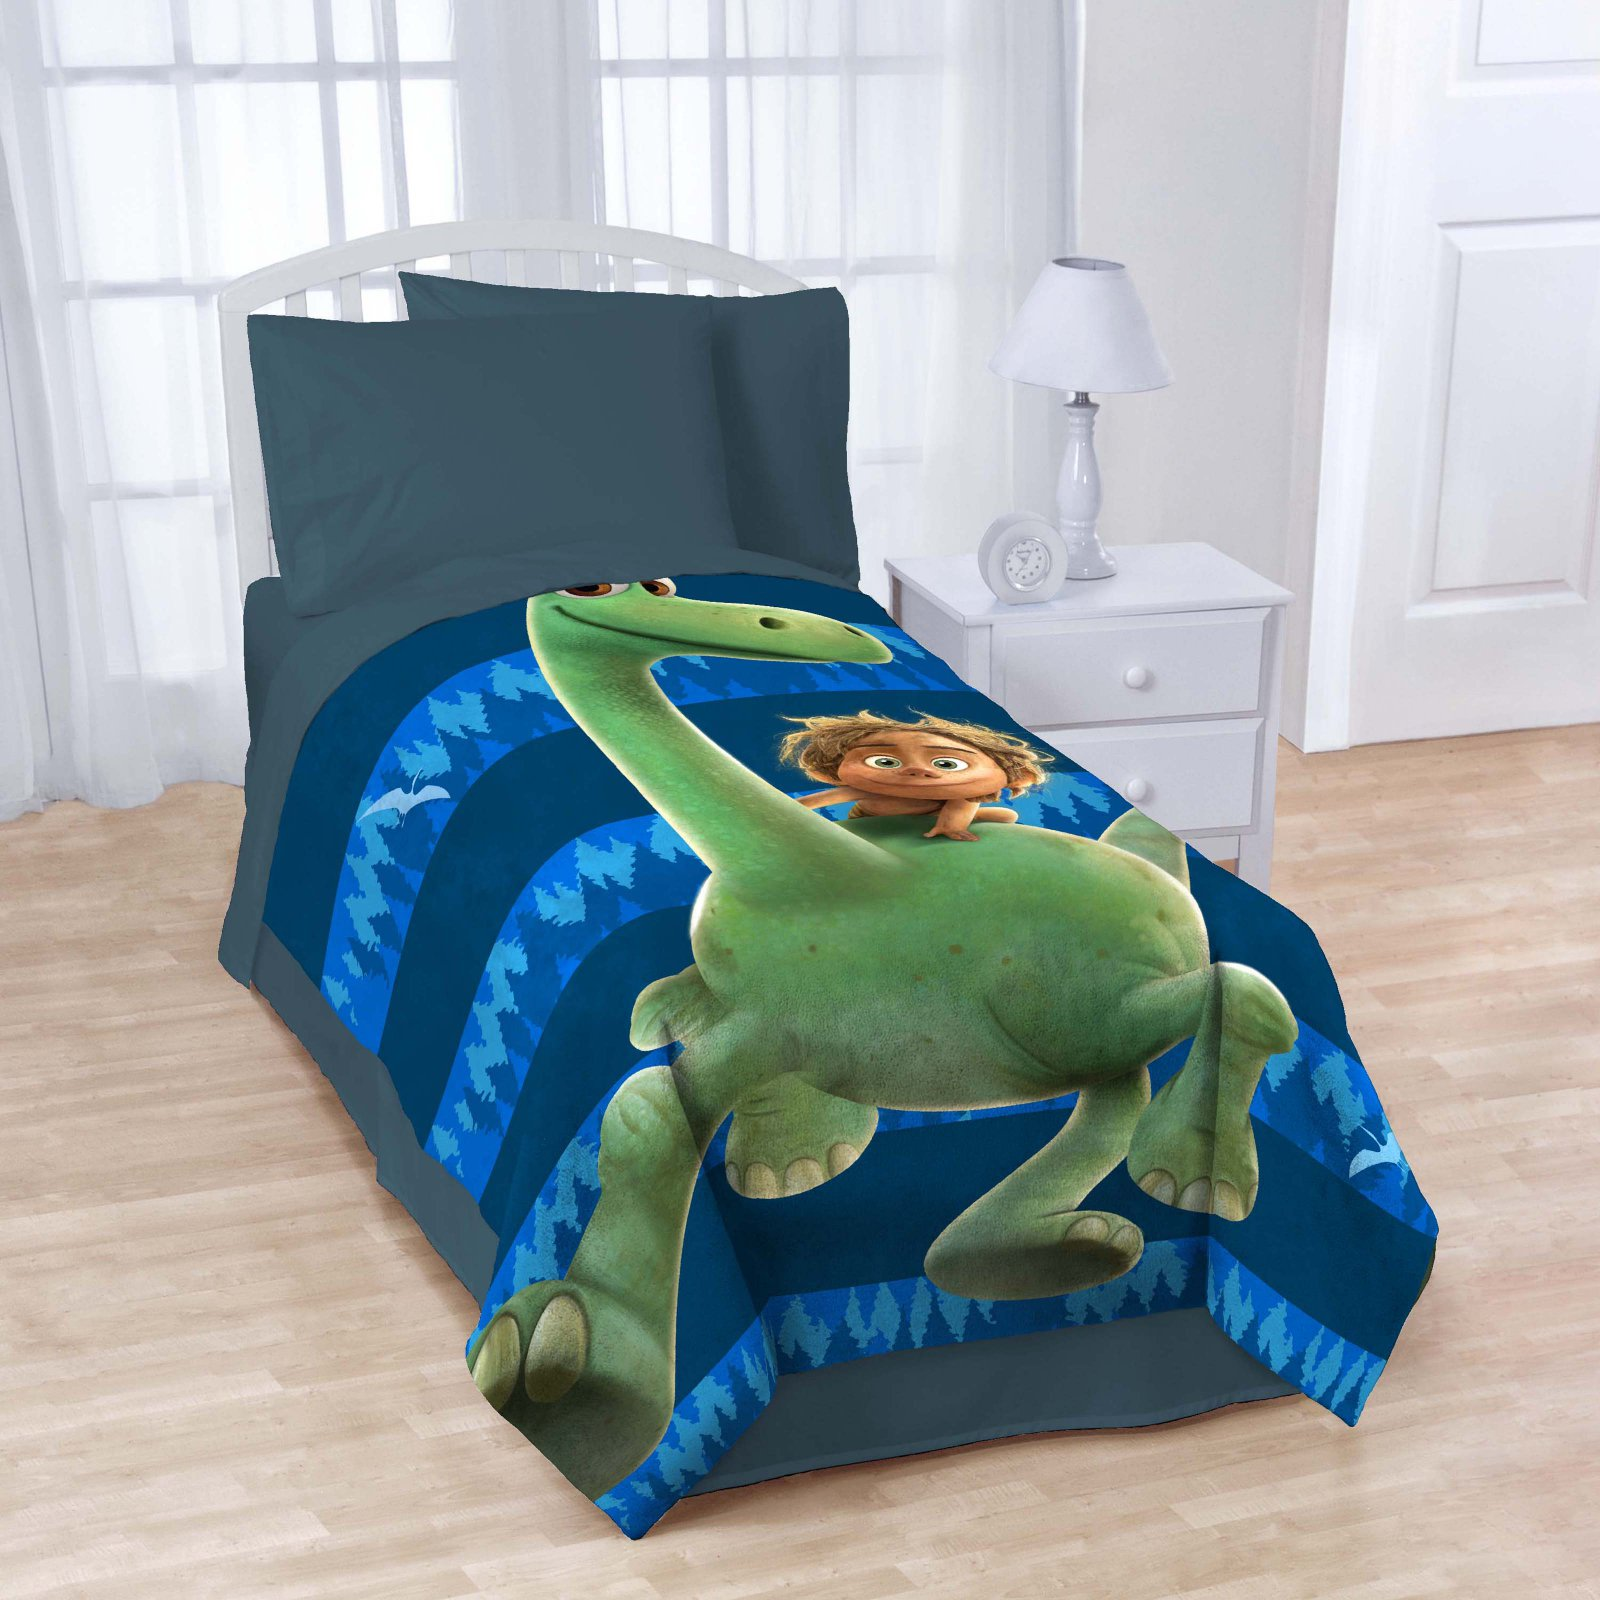 The Good Dinosaur Carnivore Blanket by Disney